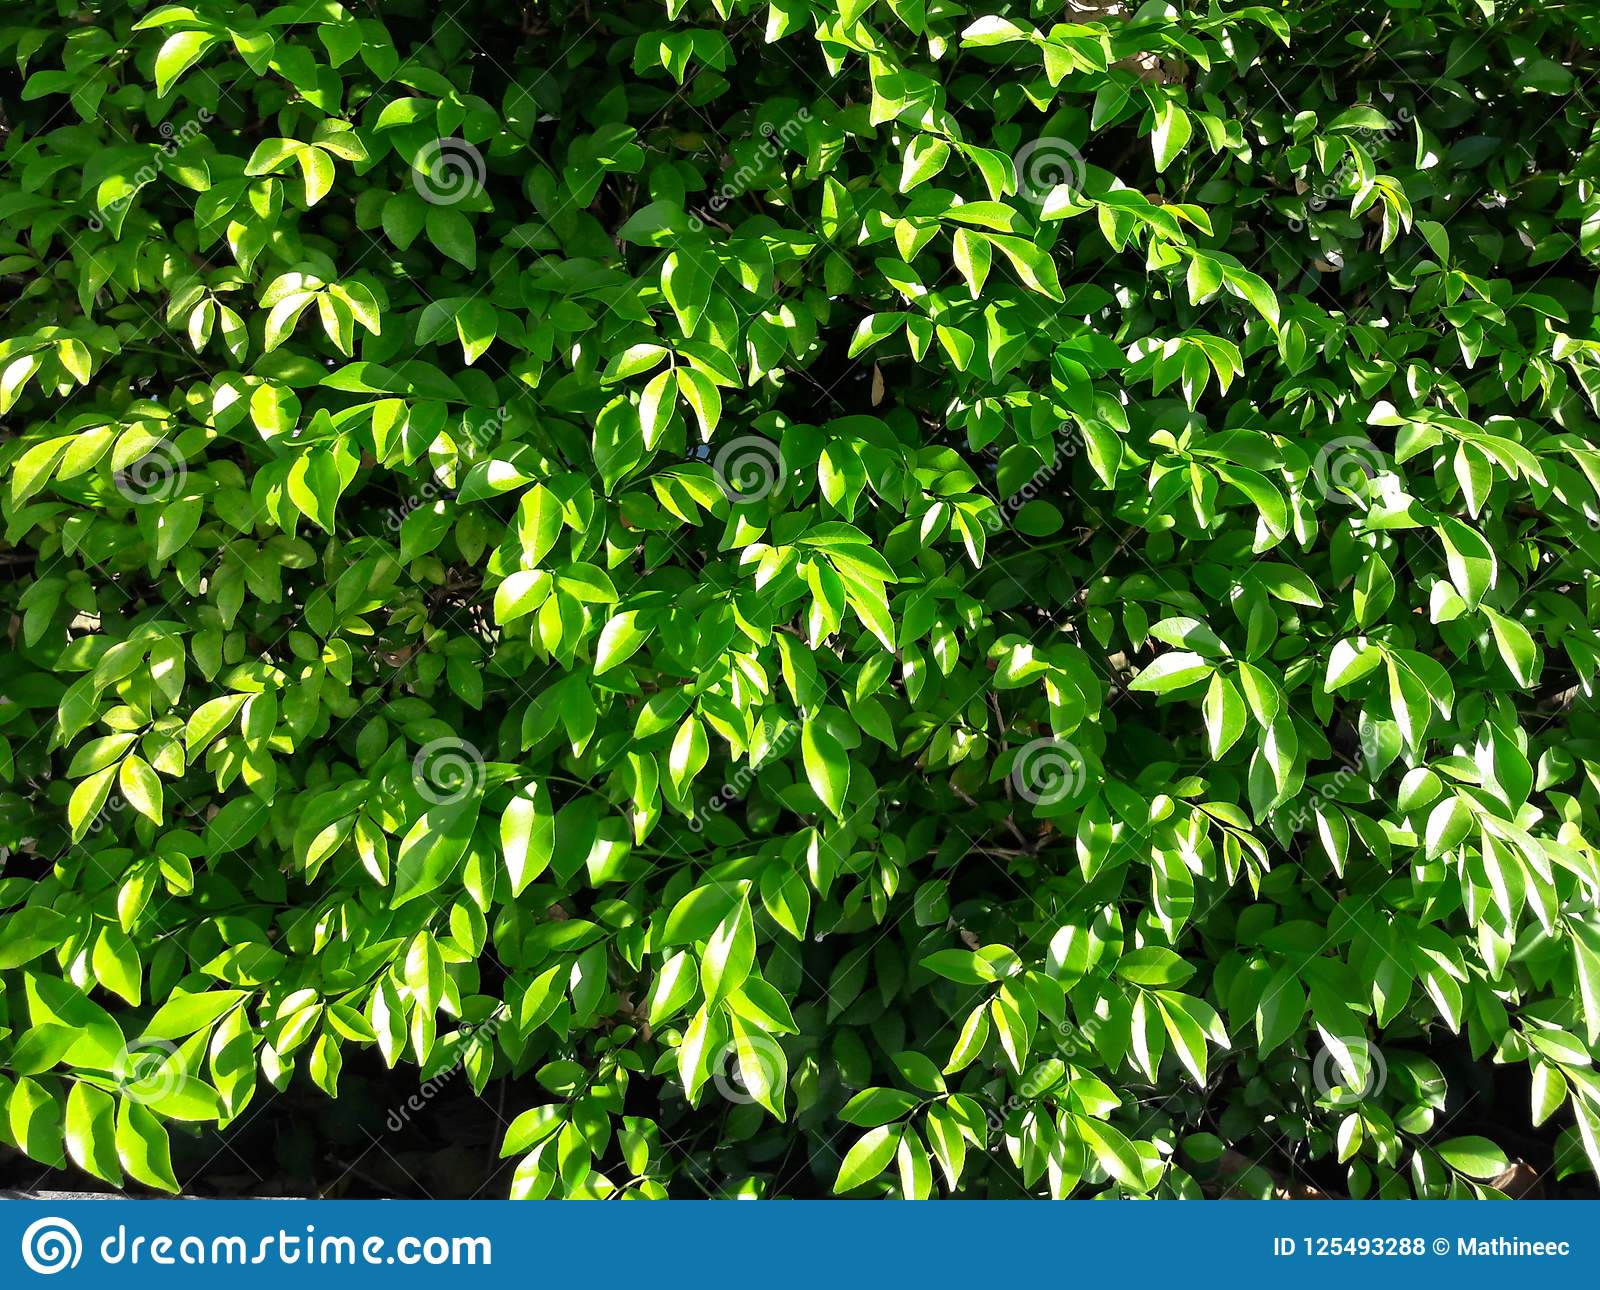 Green shrubs. Many green leaves are combined into a bush.